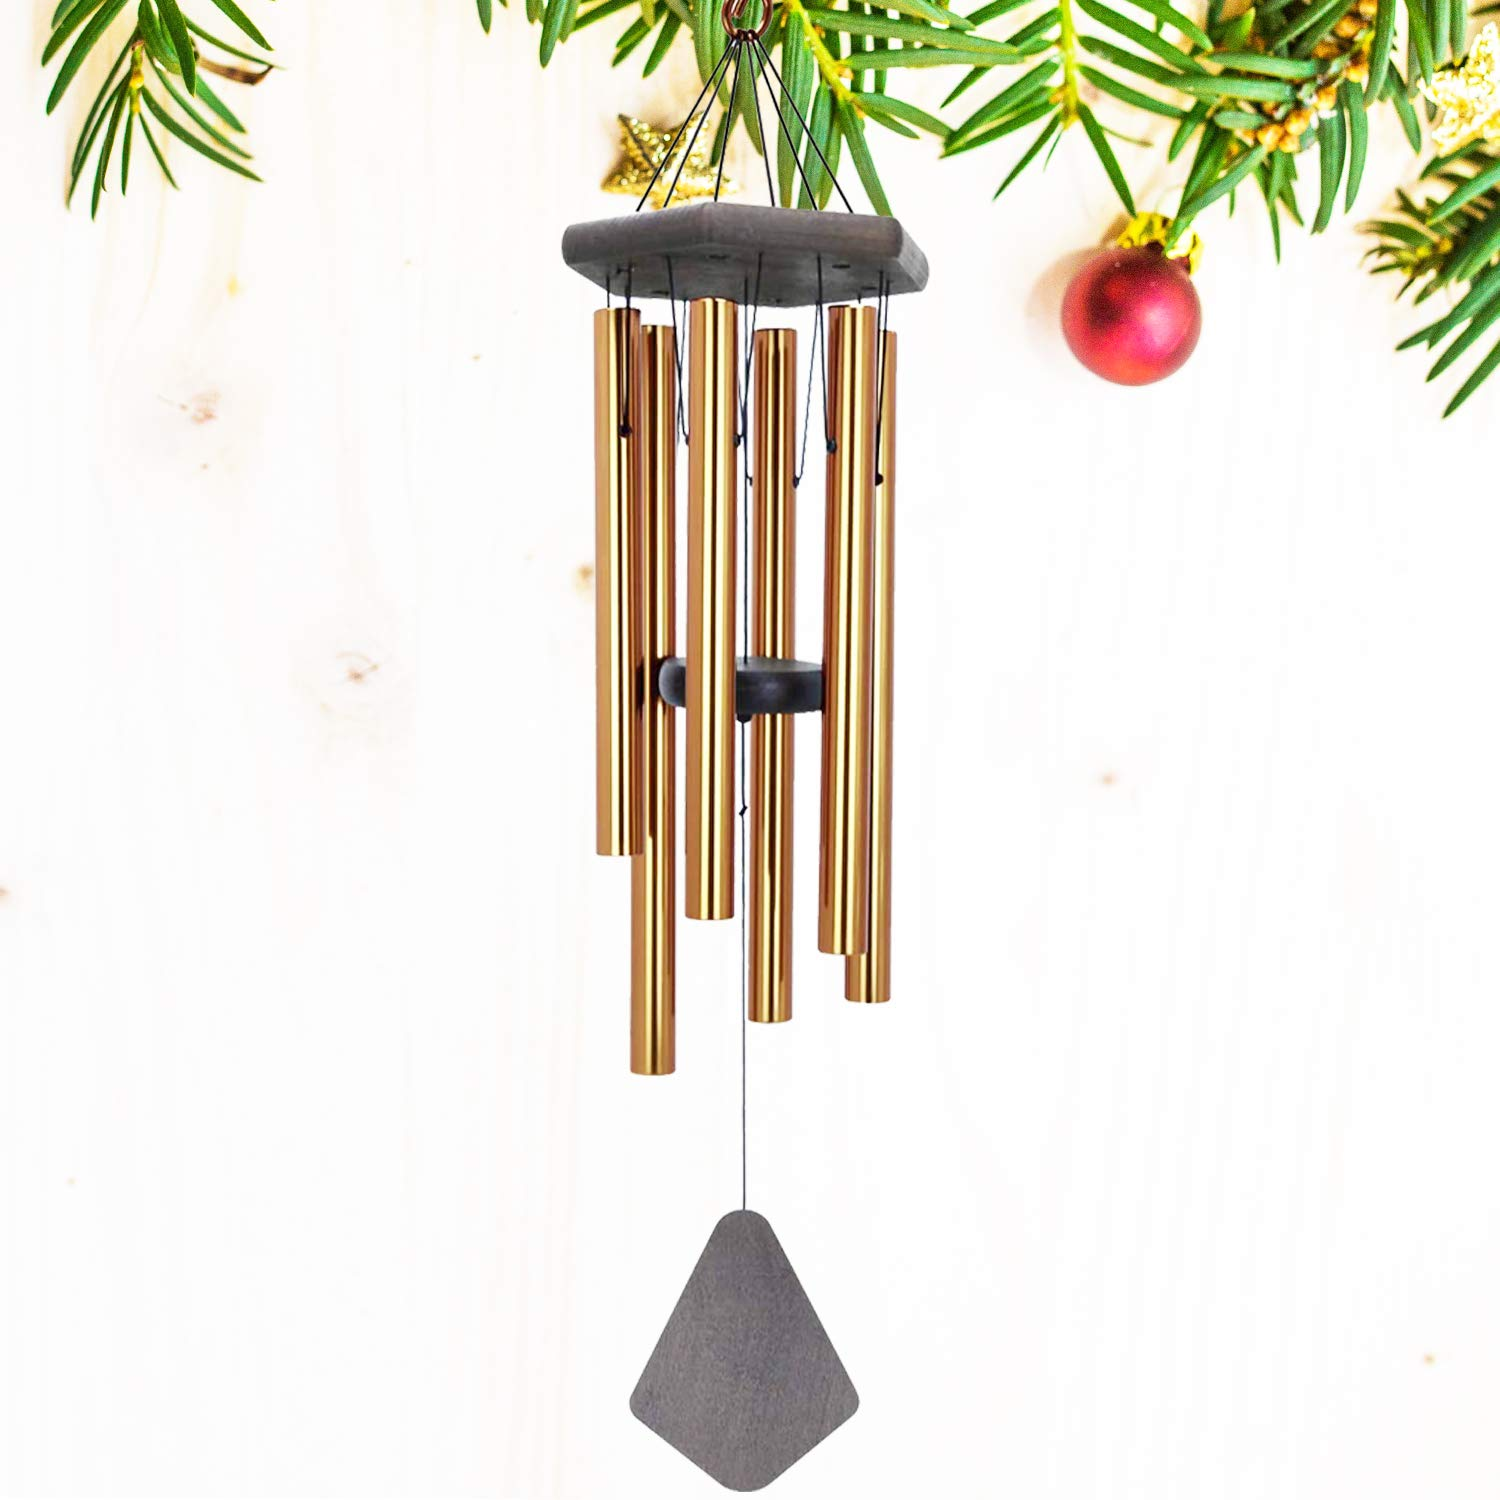 Amazon Com Astarin Wind Chimes Outdoor Large Deep Tone Memorial Personalized Wind Chimes With 6 Long Metal Tubes Sympathy Wind Chime With Sound Perfect For Garden Patio And Yard 30 Inches Bronze